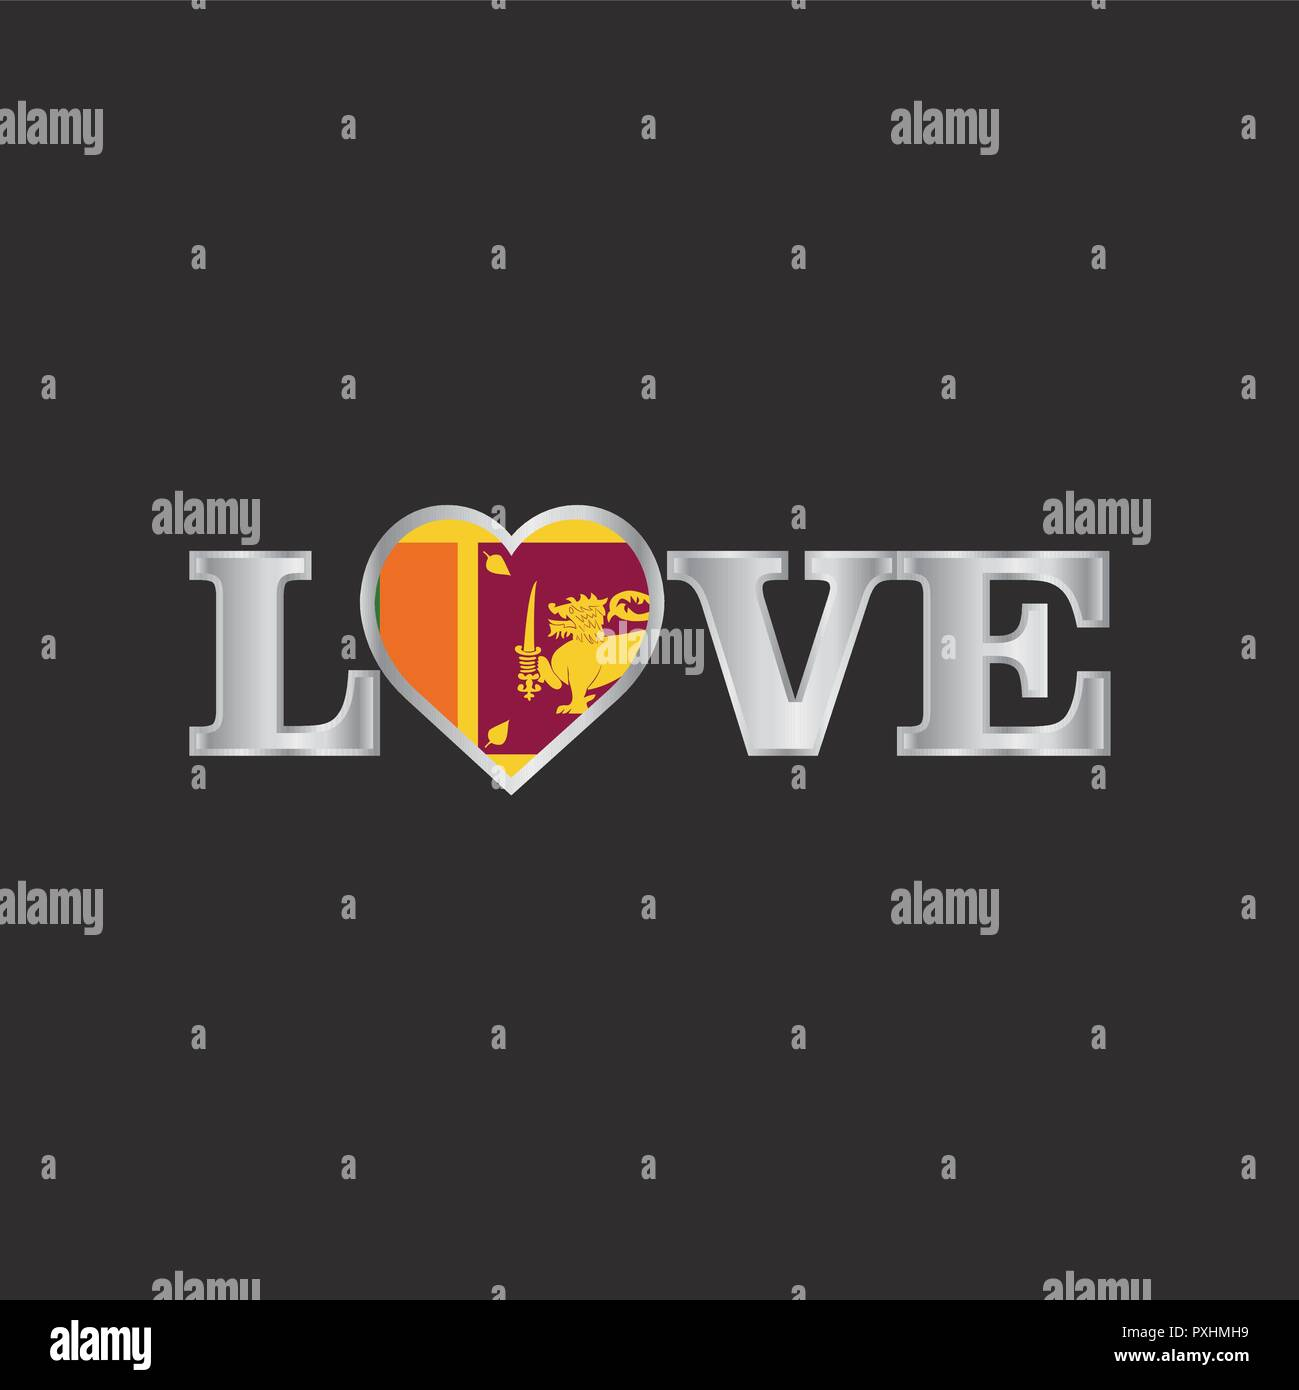 Love typography with sri lanka flag design vector stock image